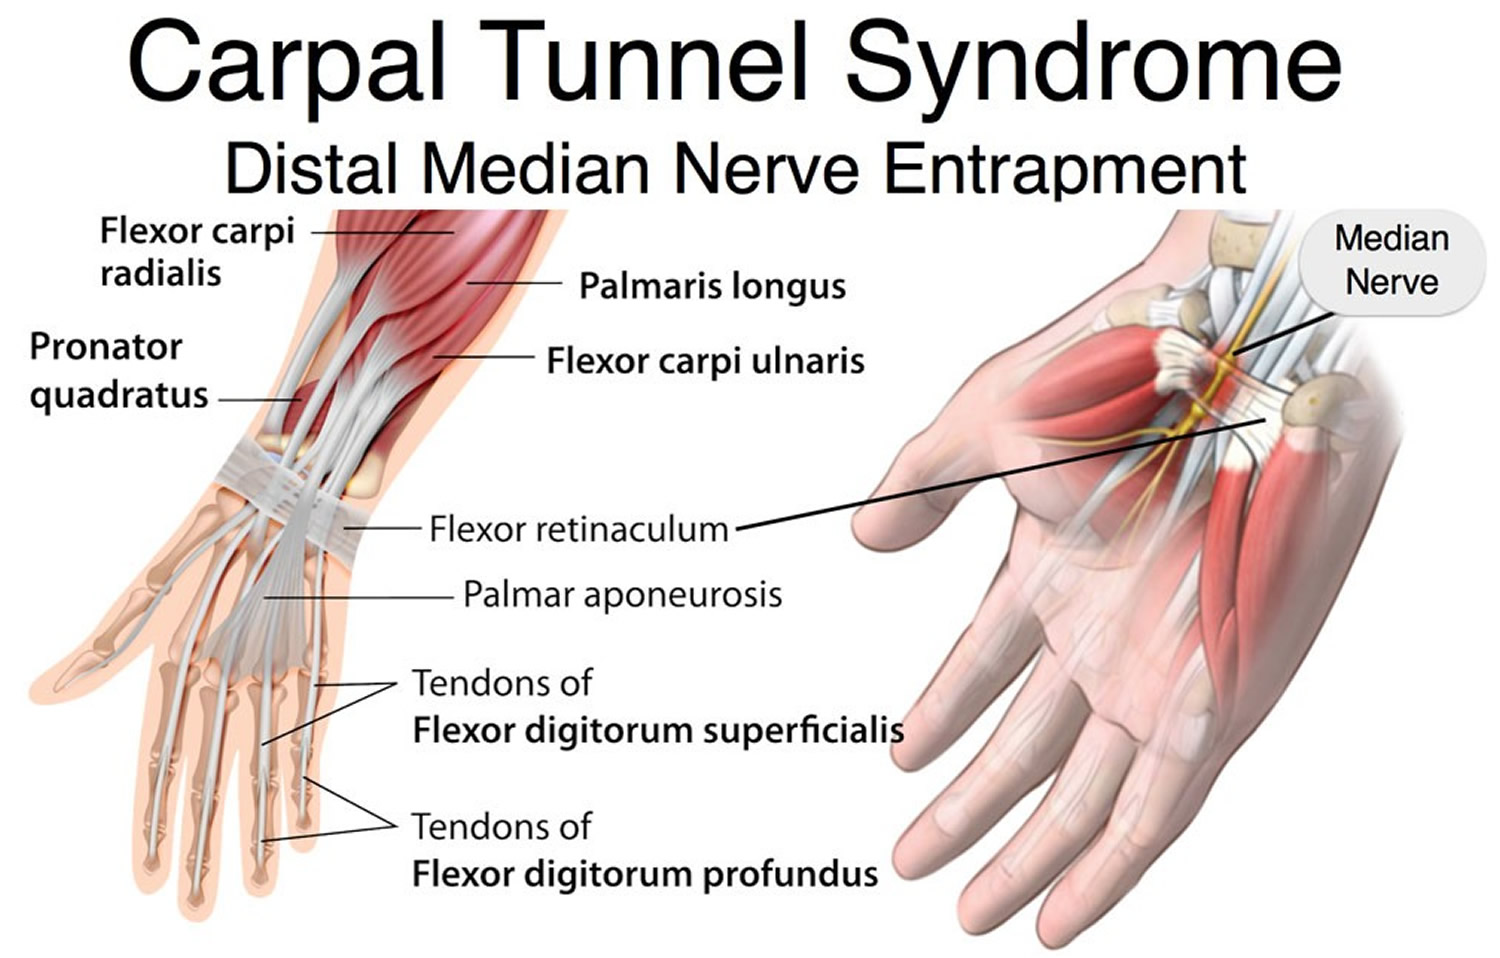 Carpal Tunnel Syndrome - Causes, Treatment, Splint & Surgery